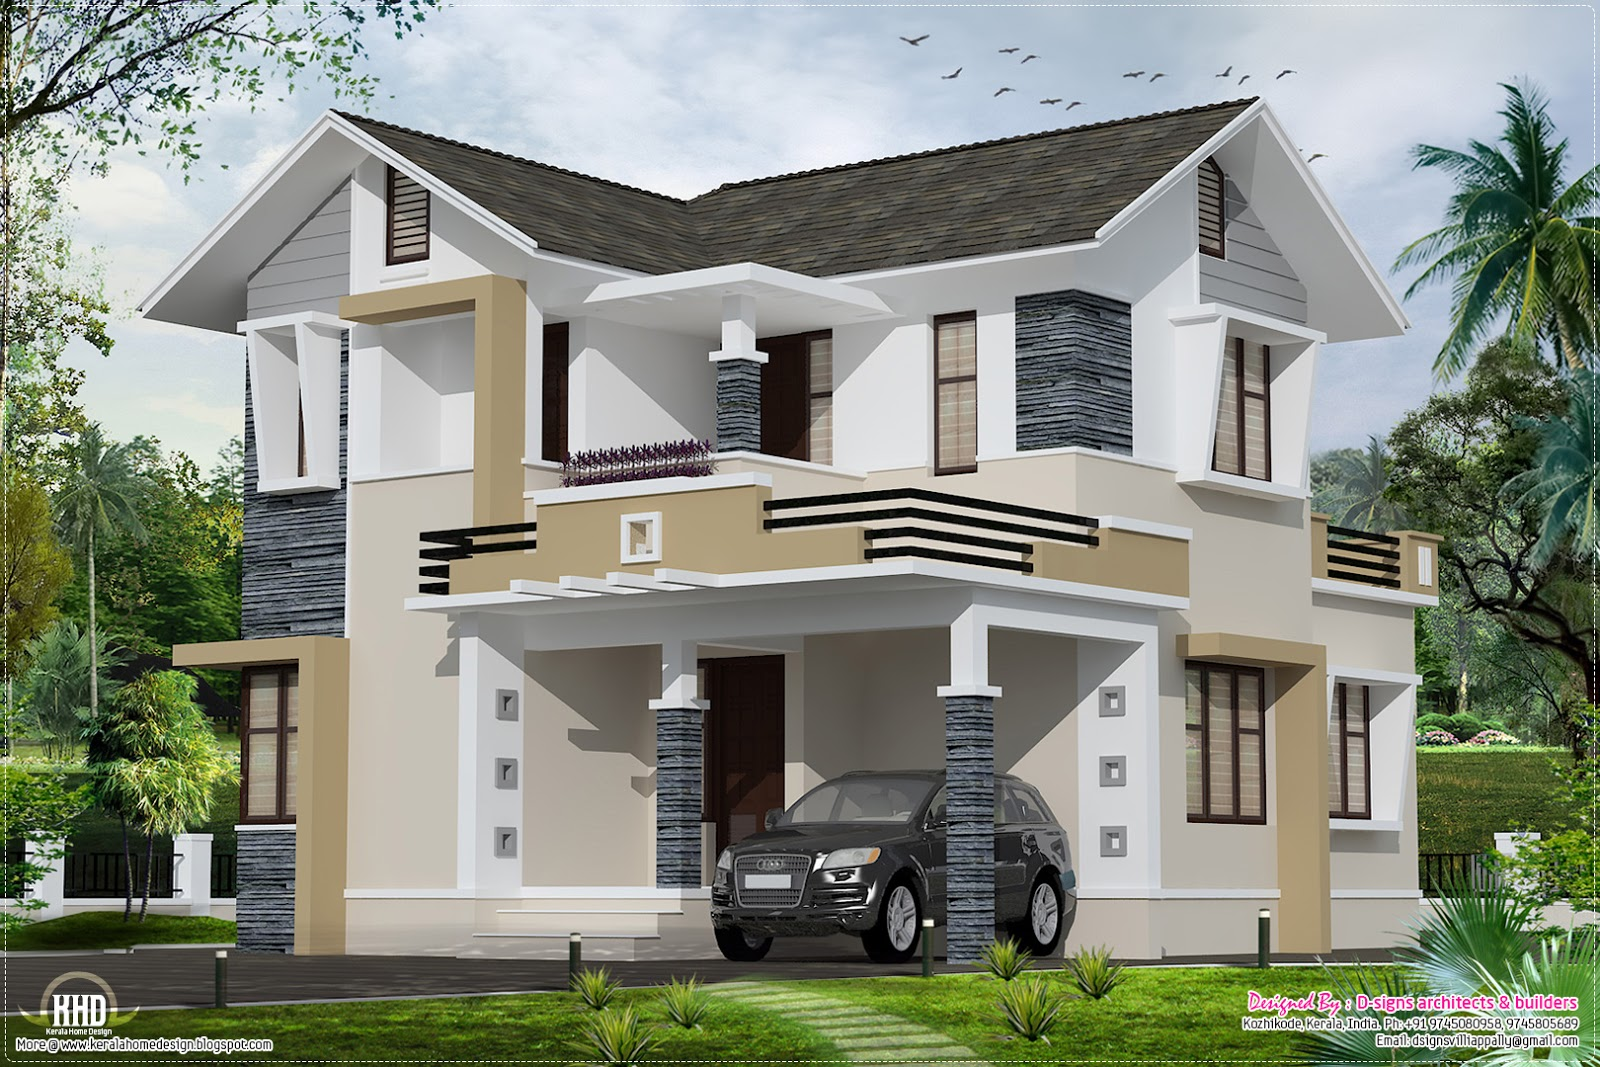 Stylish small home design kerala home design and floor plans for Home designs small